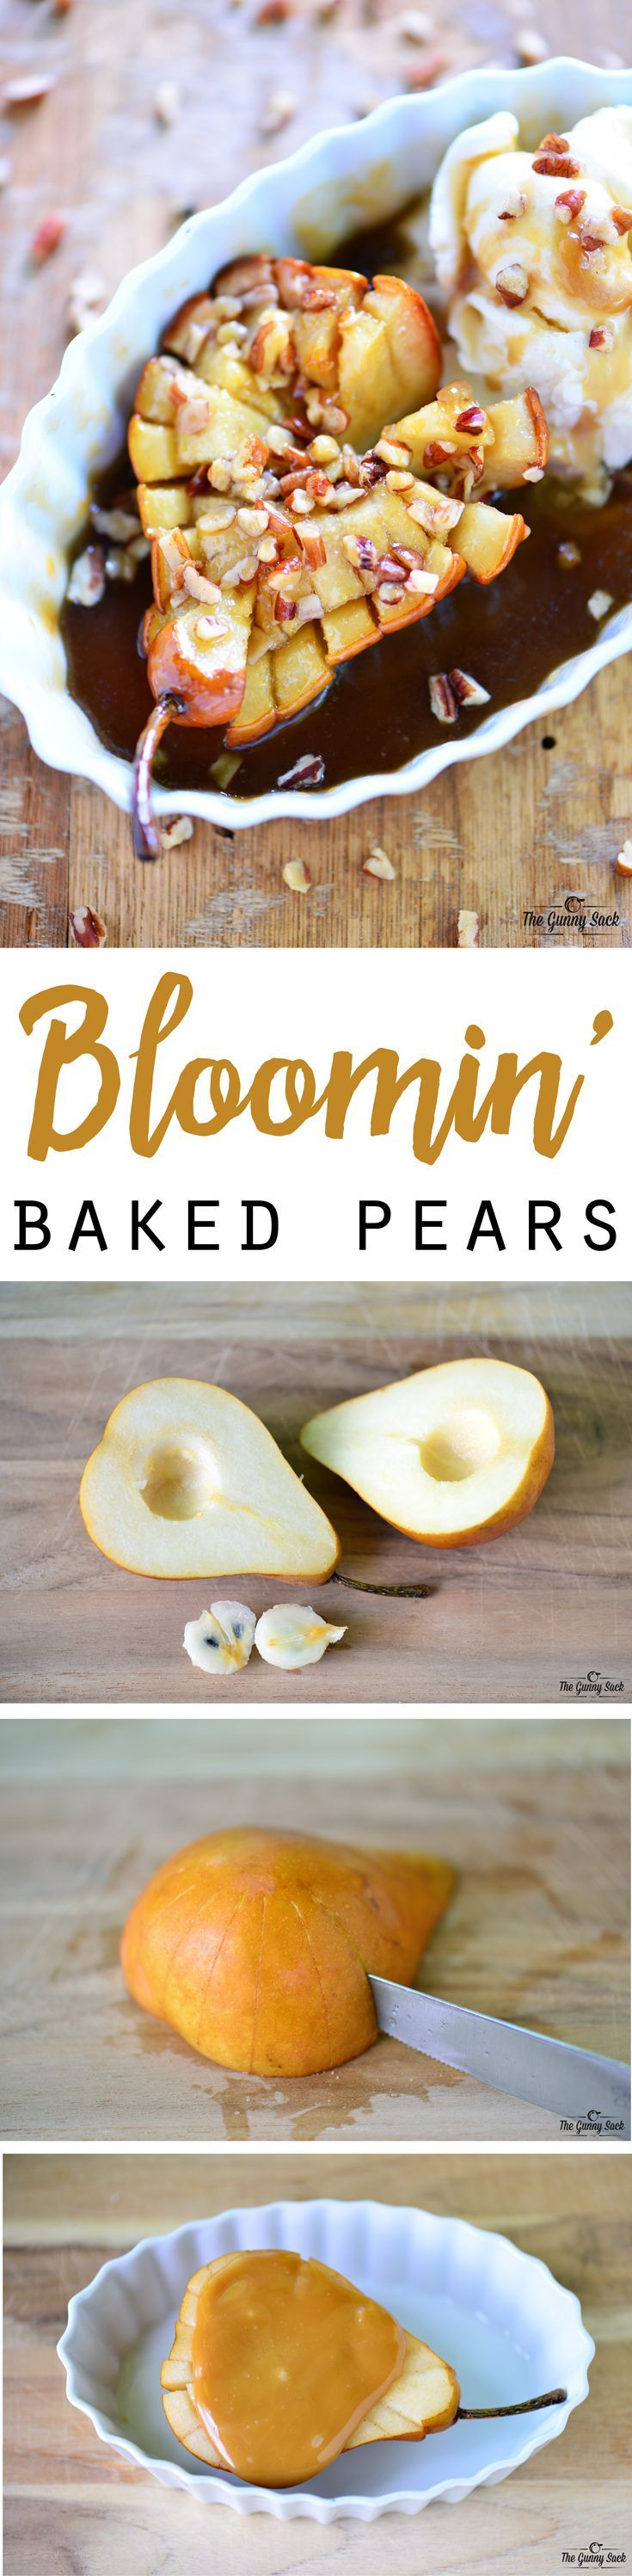 This Bloomin' Baked Pears recipe with butterscotch caramel and pecans is perfect for fall! Serve warm with vanilla ice for a special dessert!